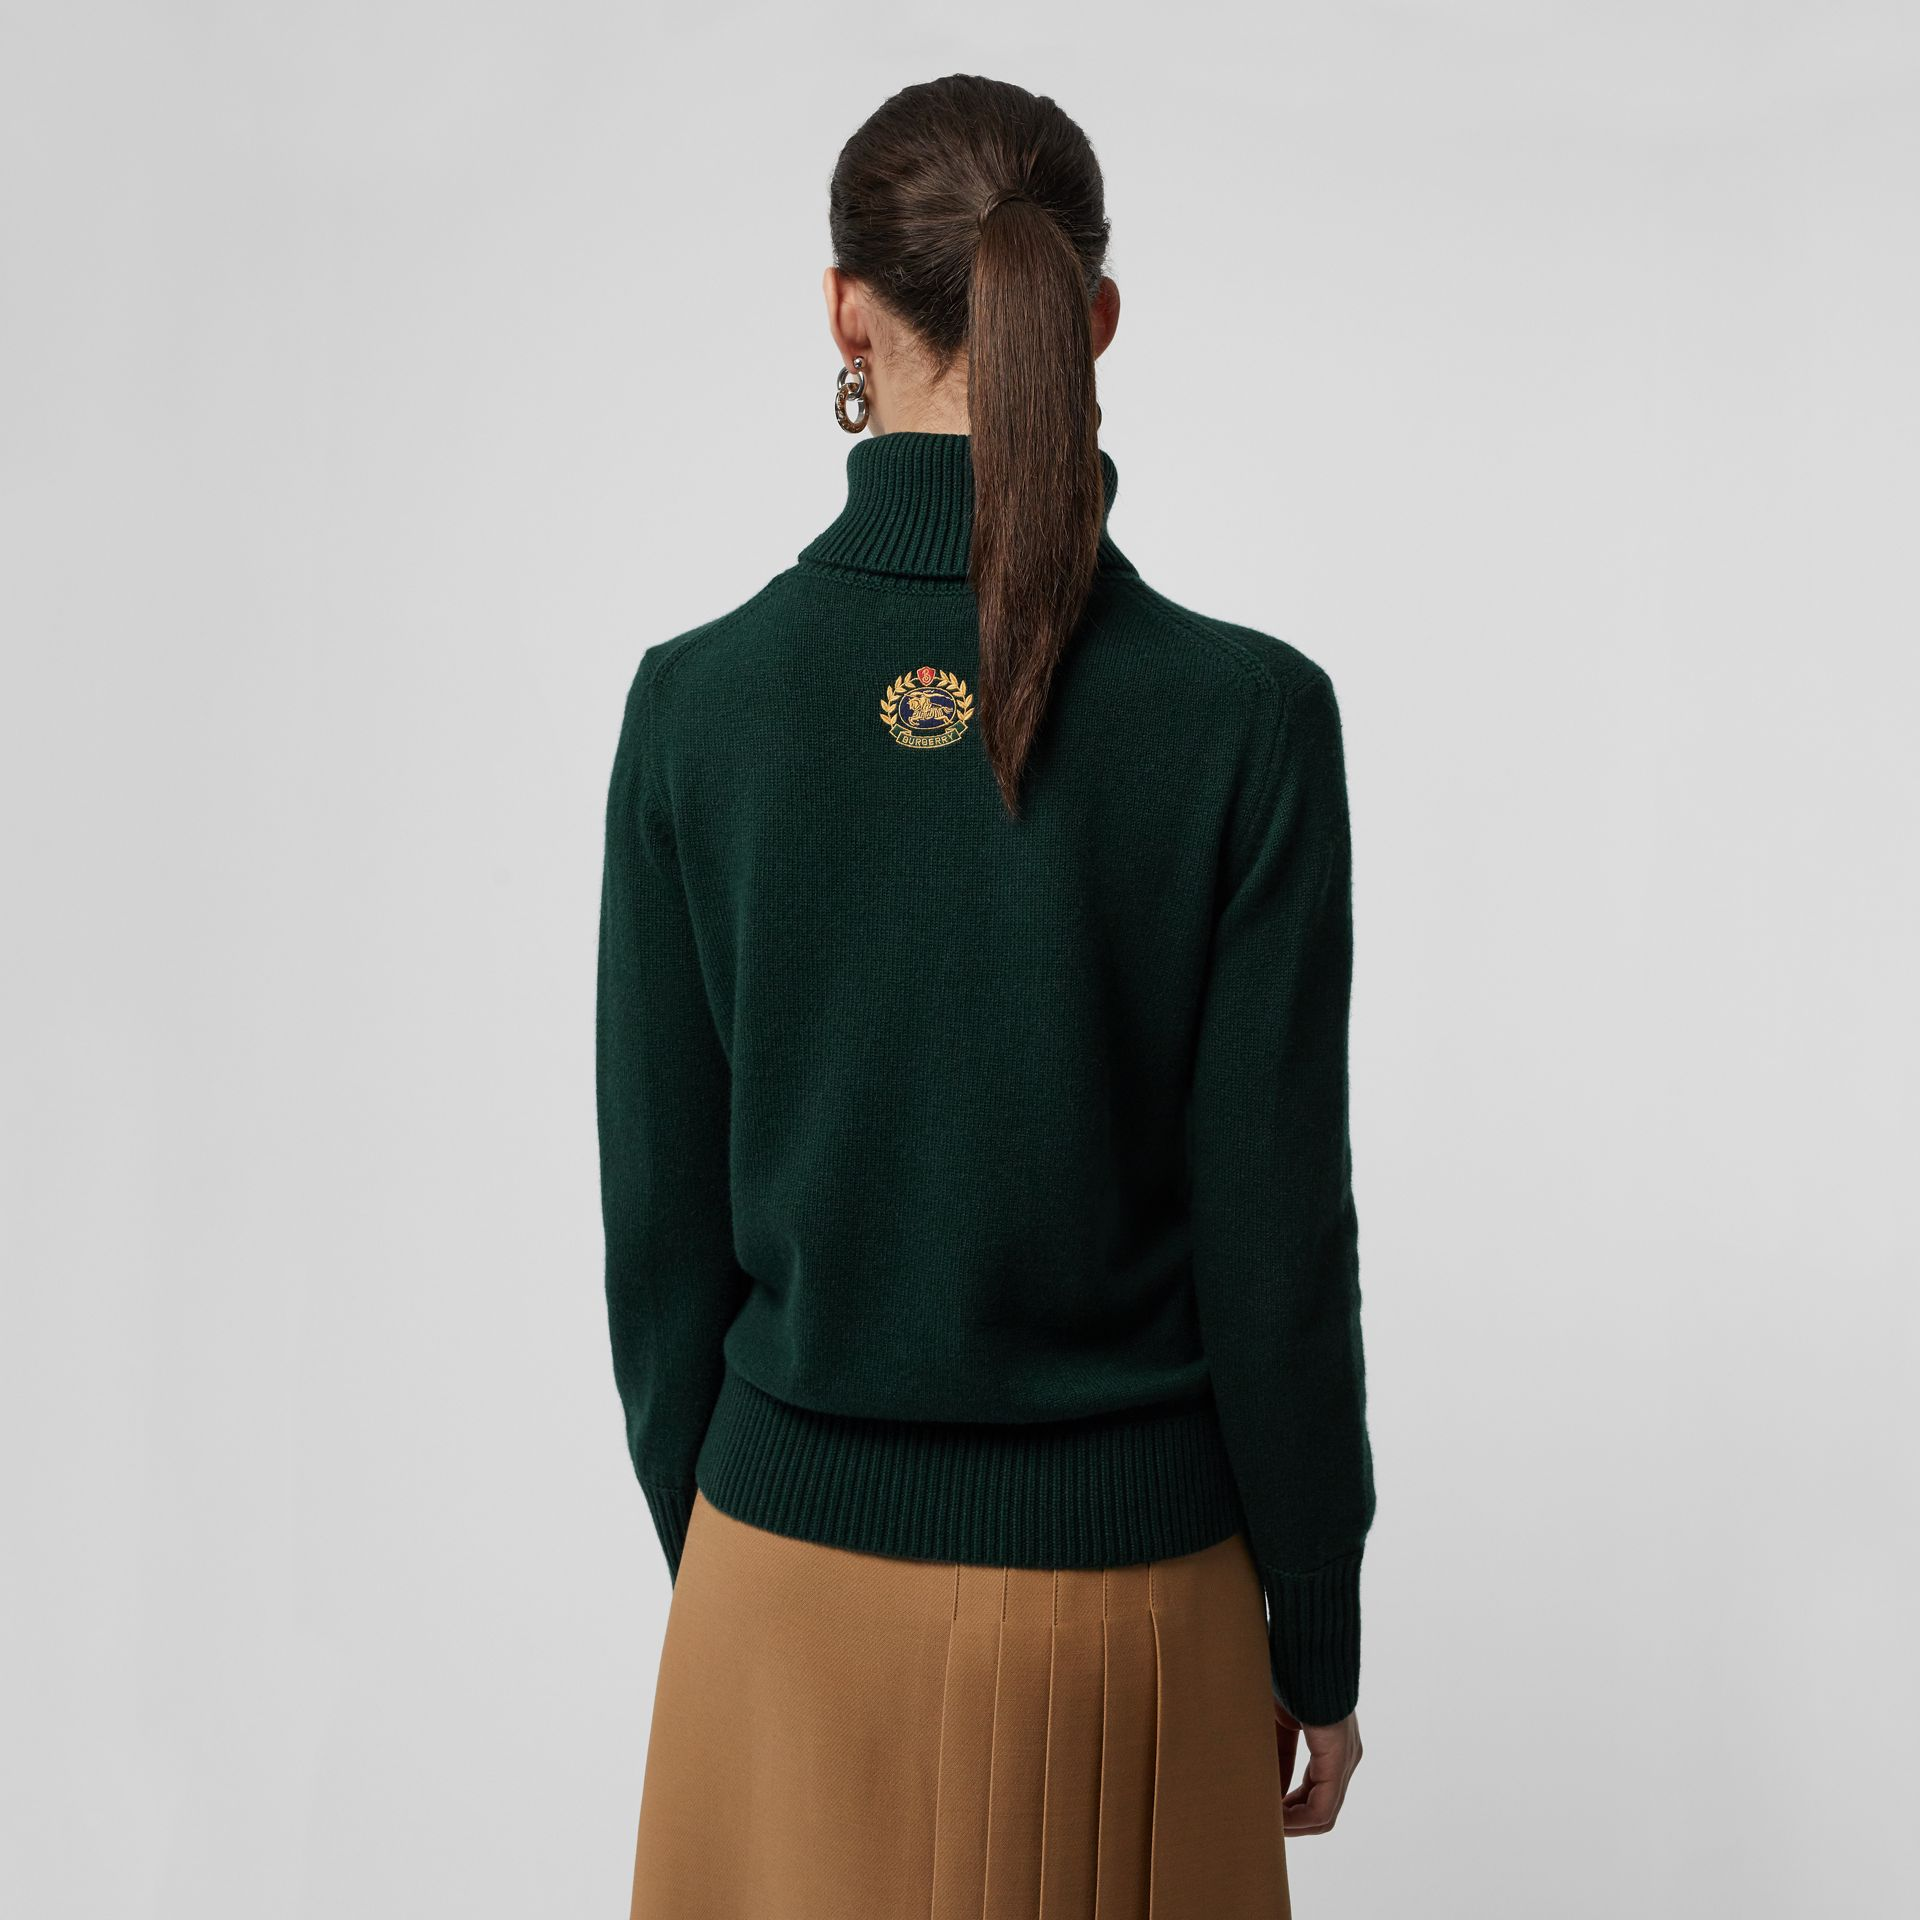 Embroidered Crest Cashmere Roll-neck Sweater in Dark Cedar Green - Women | Burberry - gallery image 2